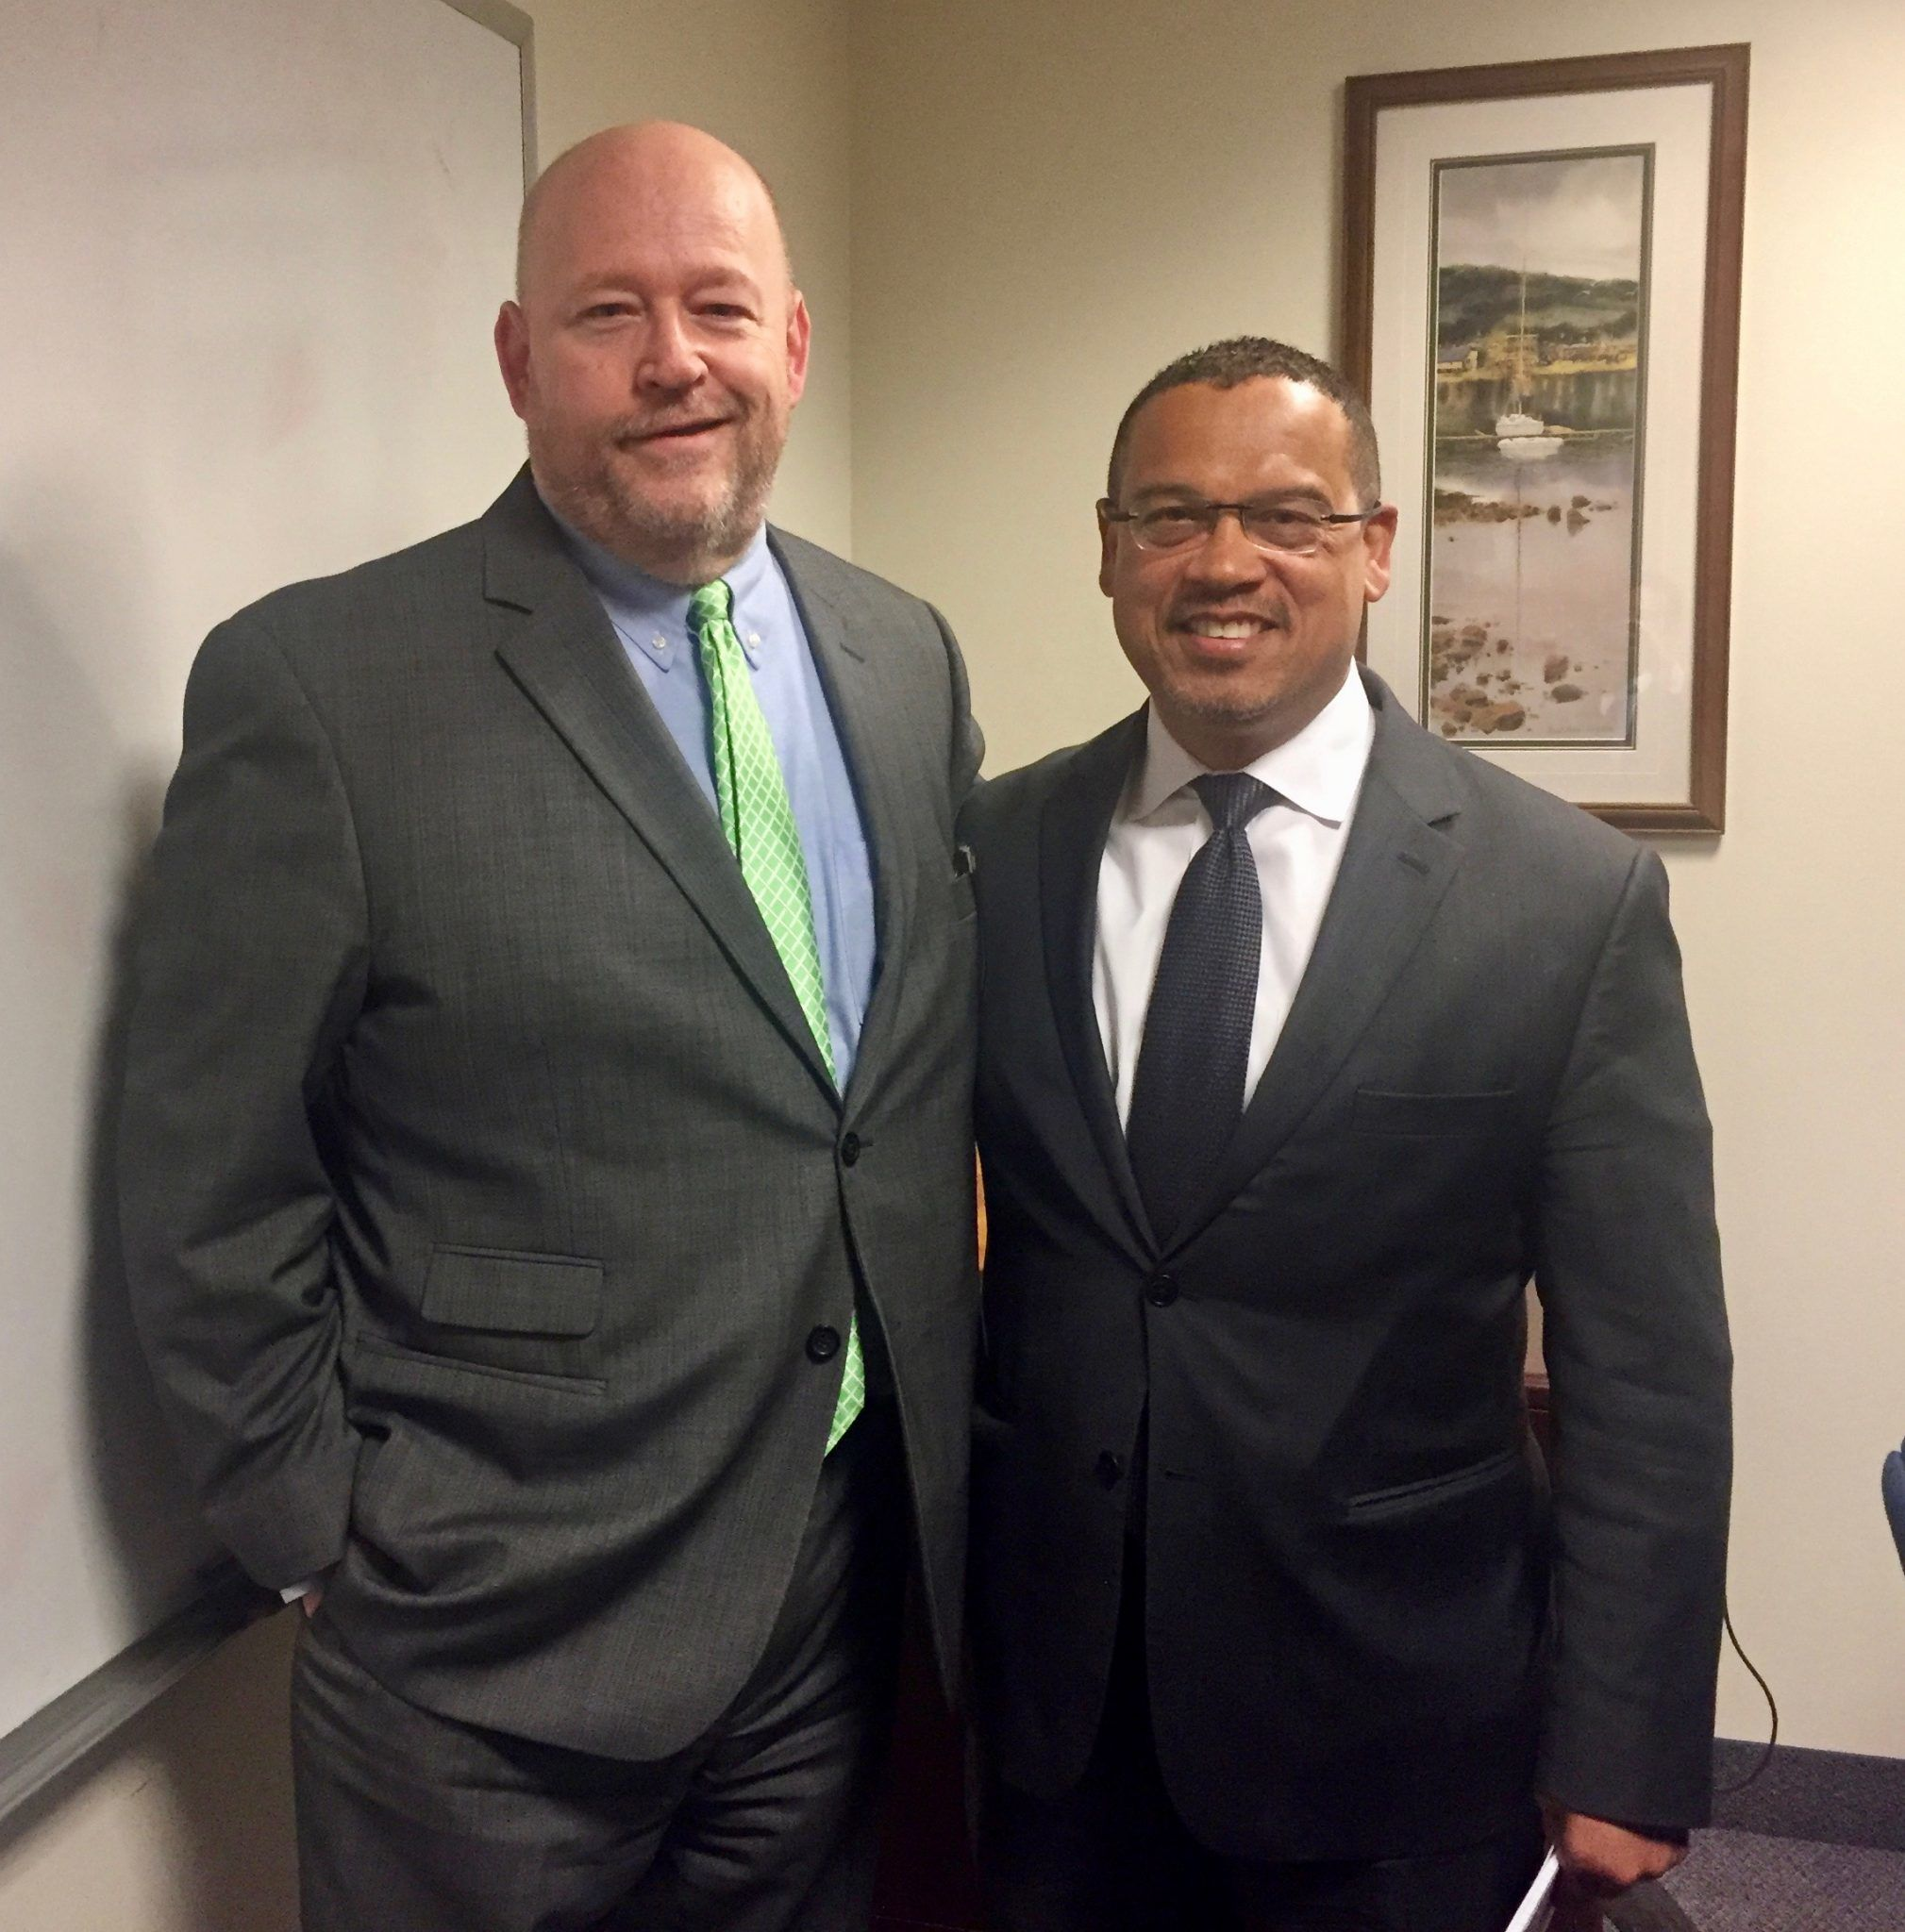 Pete Barry with Attorney General Keith Ellison